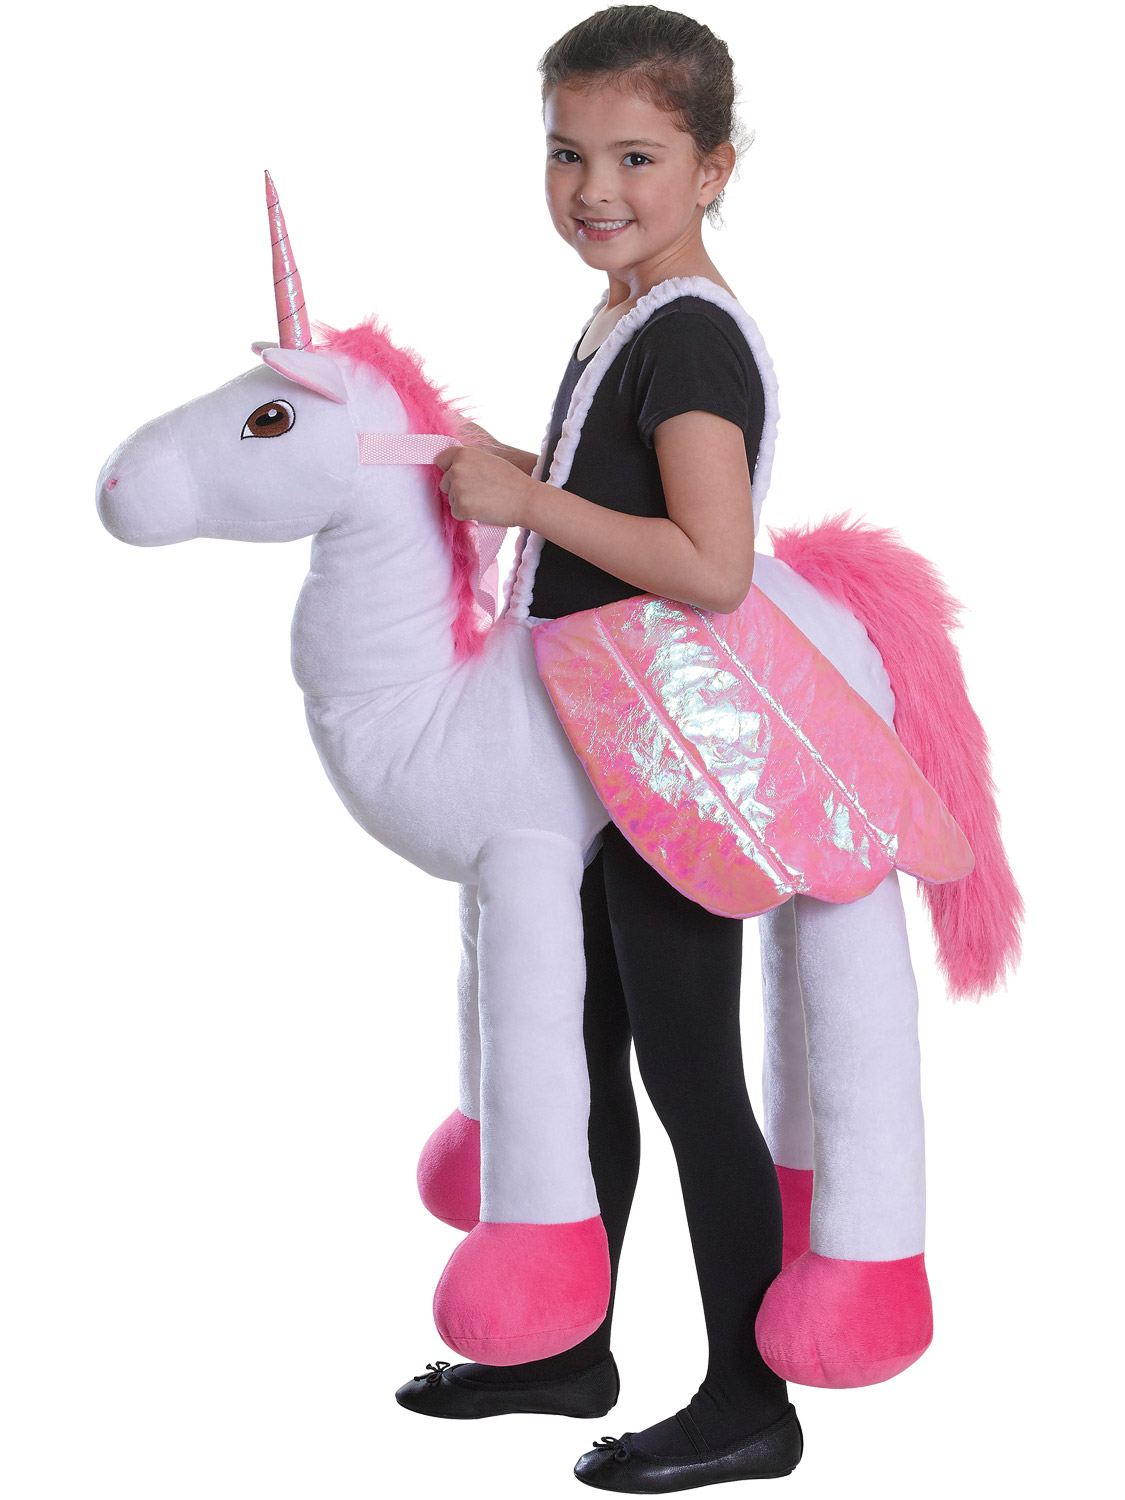 Childs Riding Unicorn Costume Girls Boys Fun Step in Animal Fancy Dress Outfit | eBay